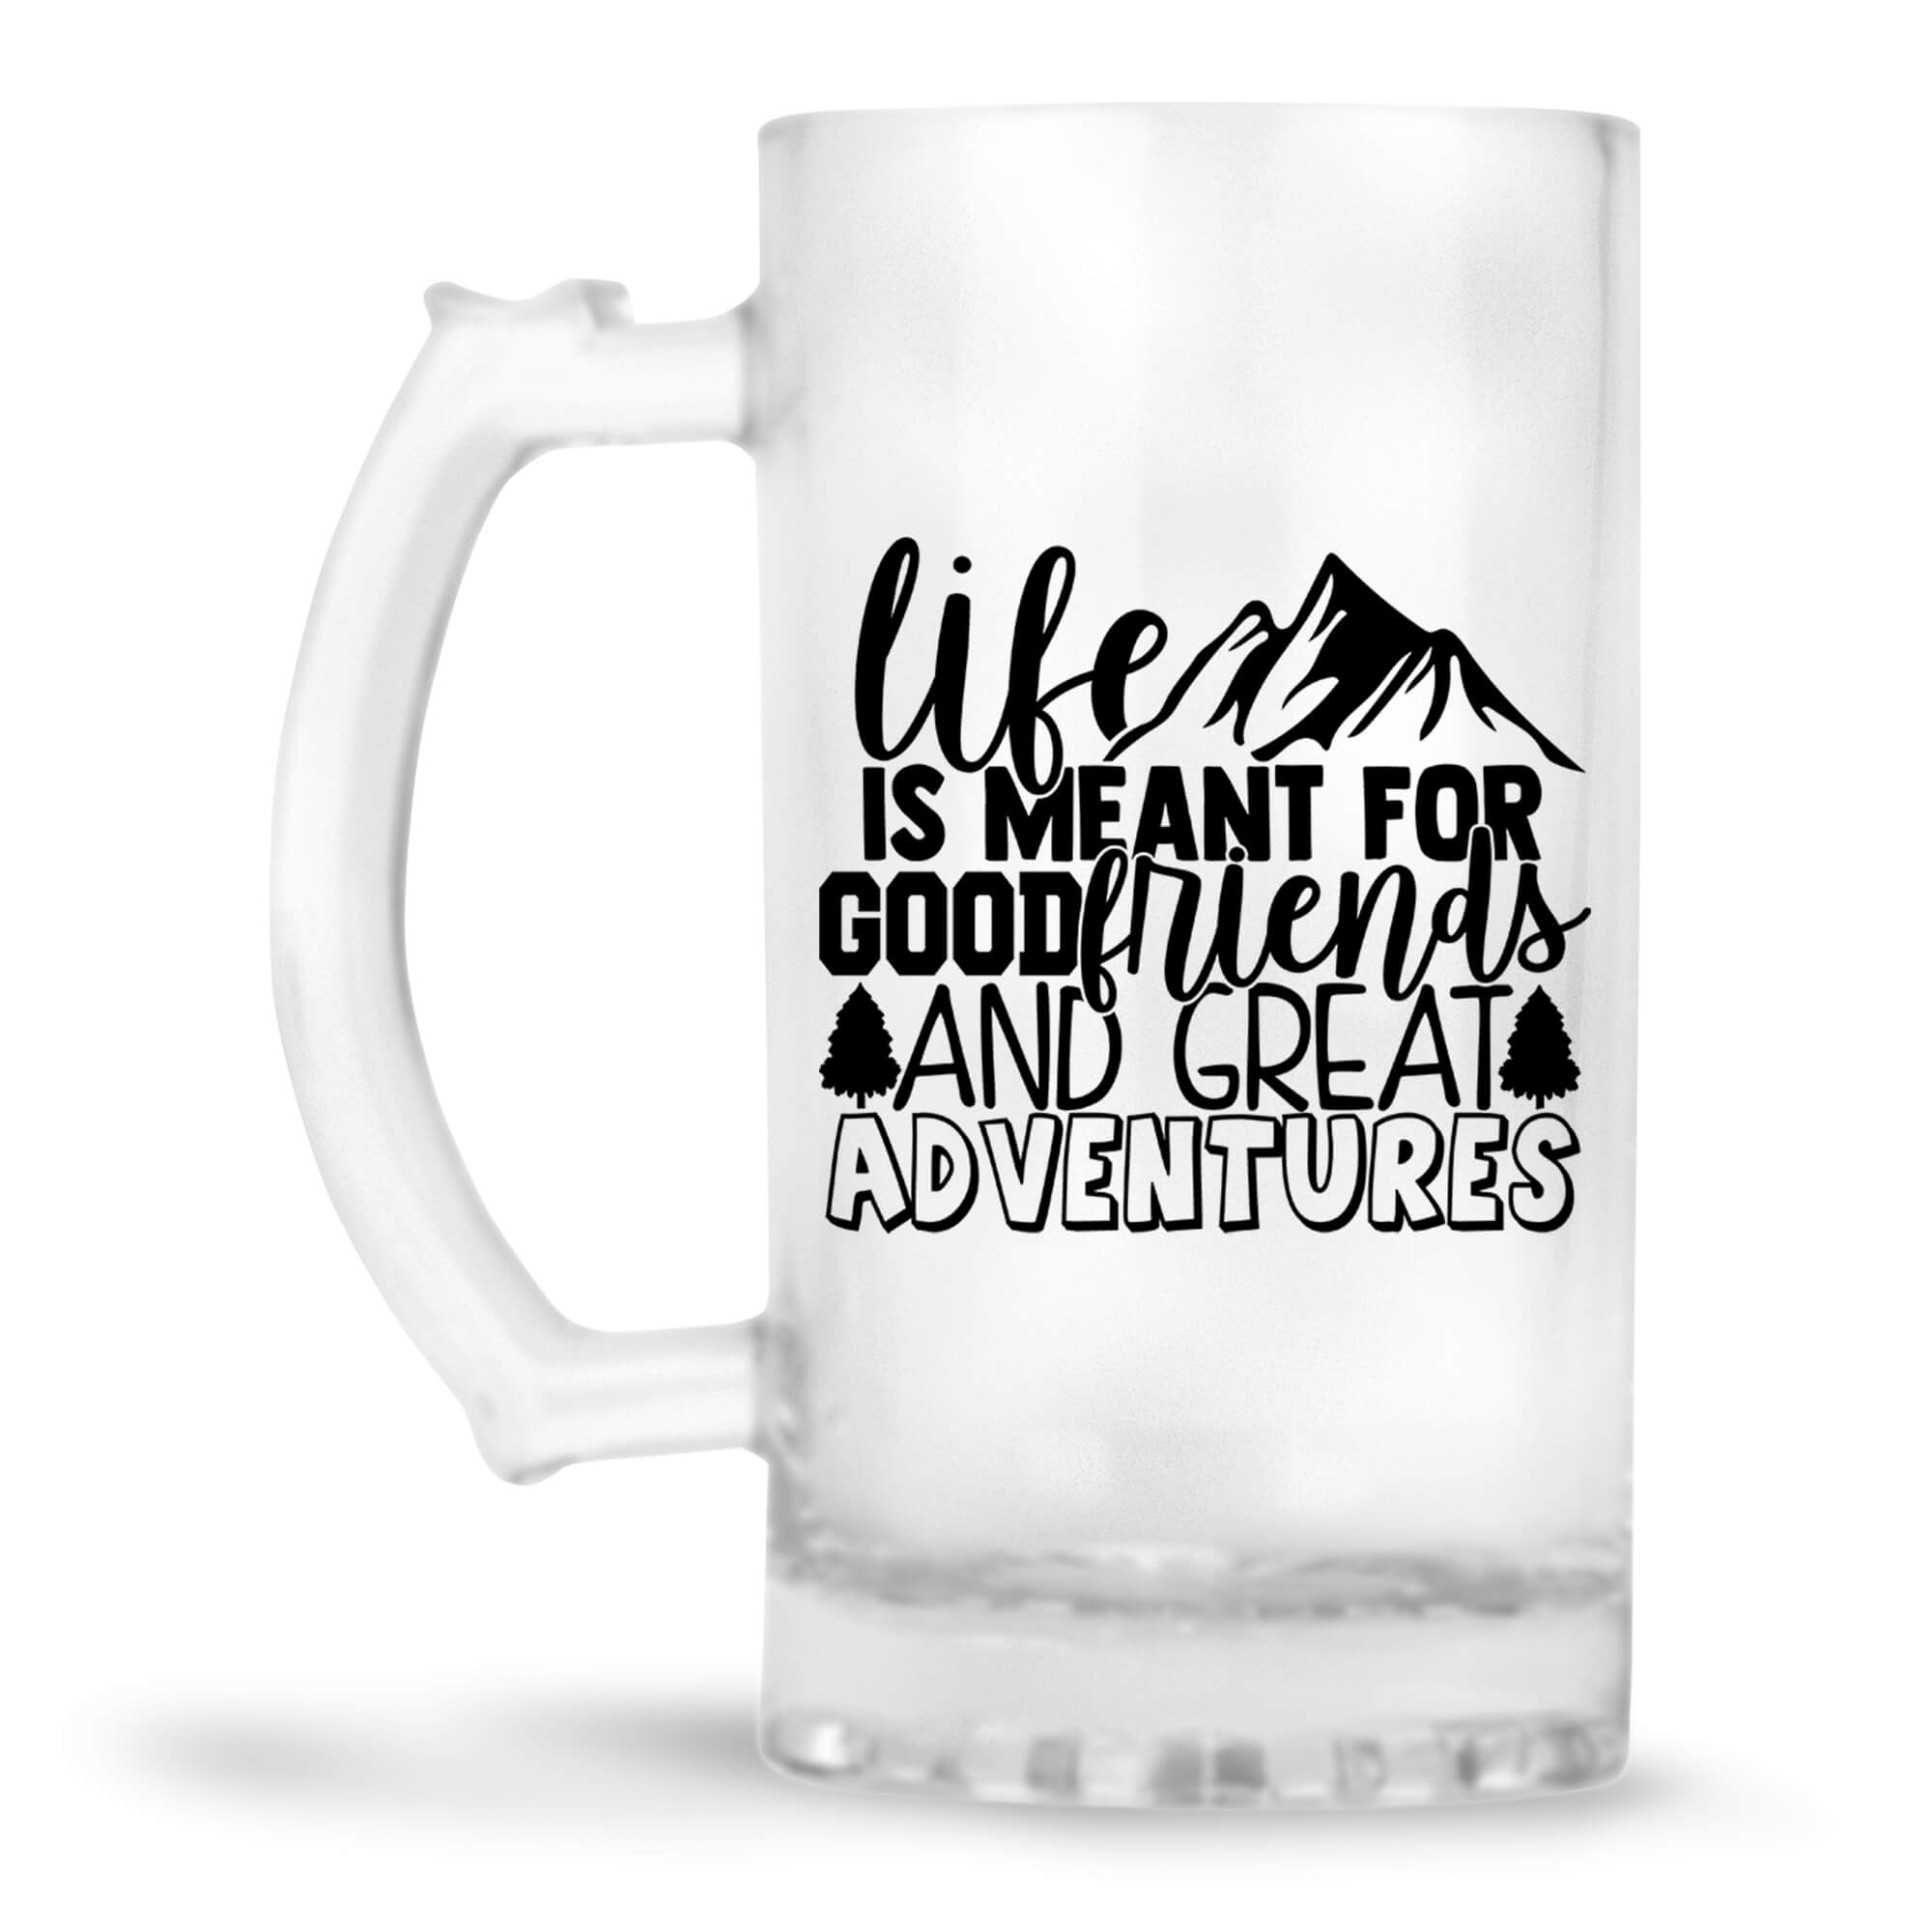 Friends & Adventures Beer Mug